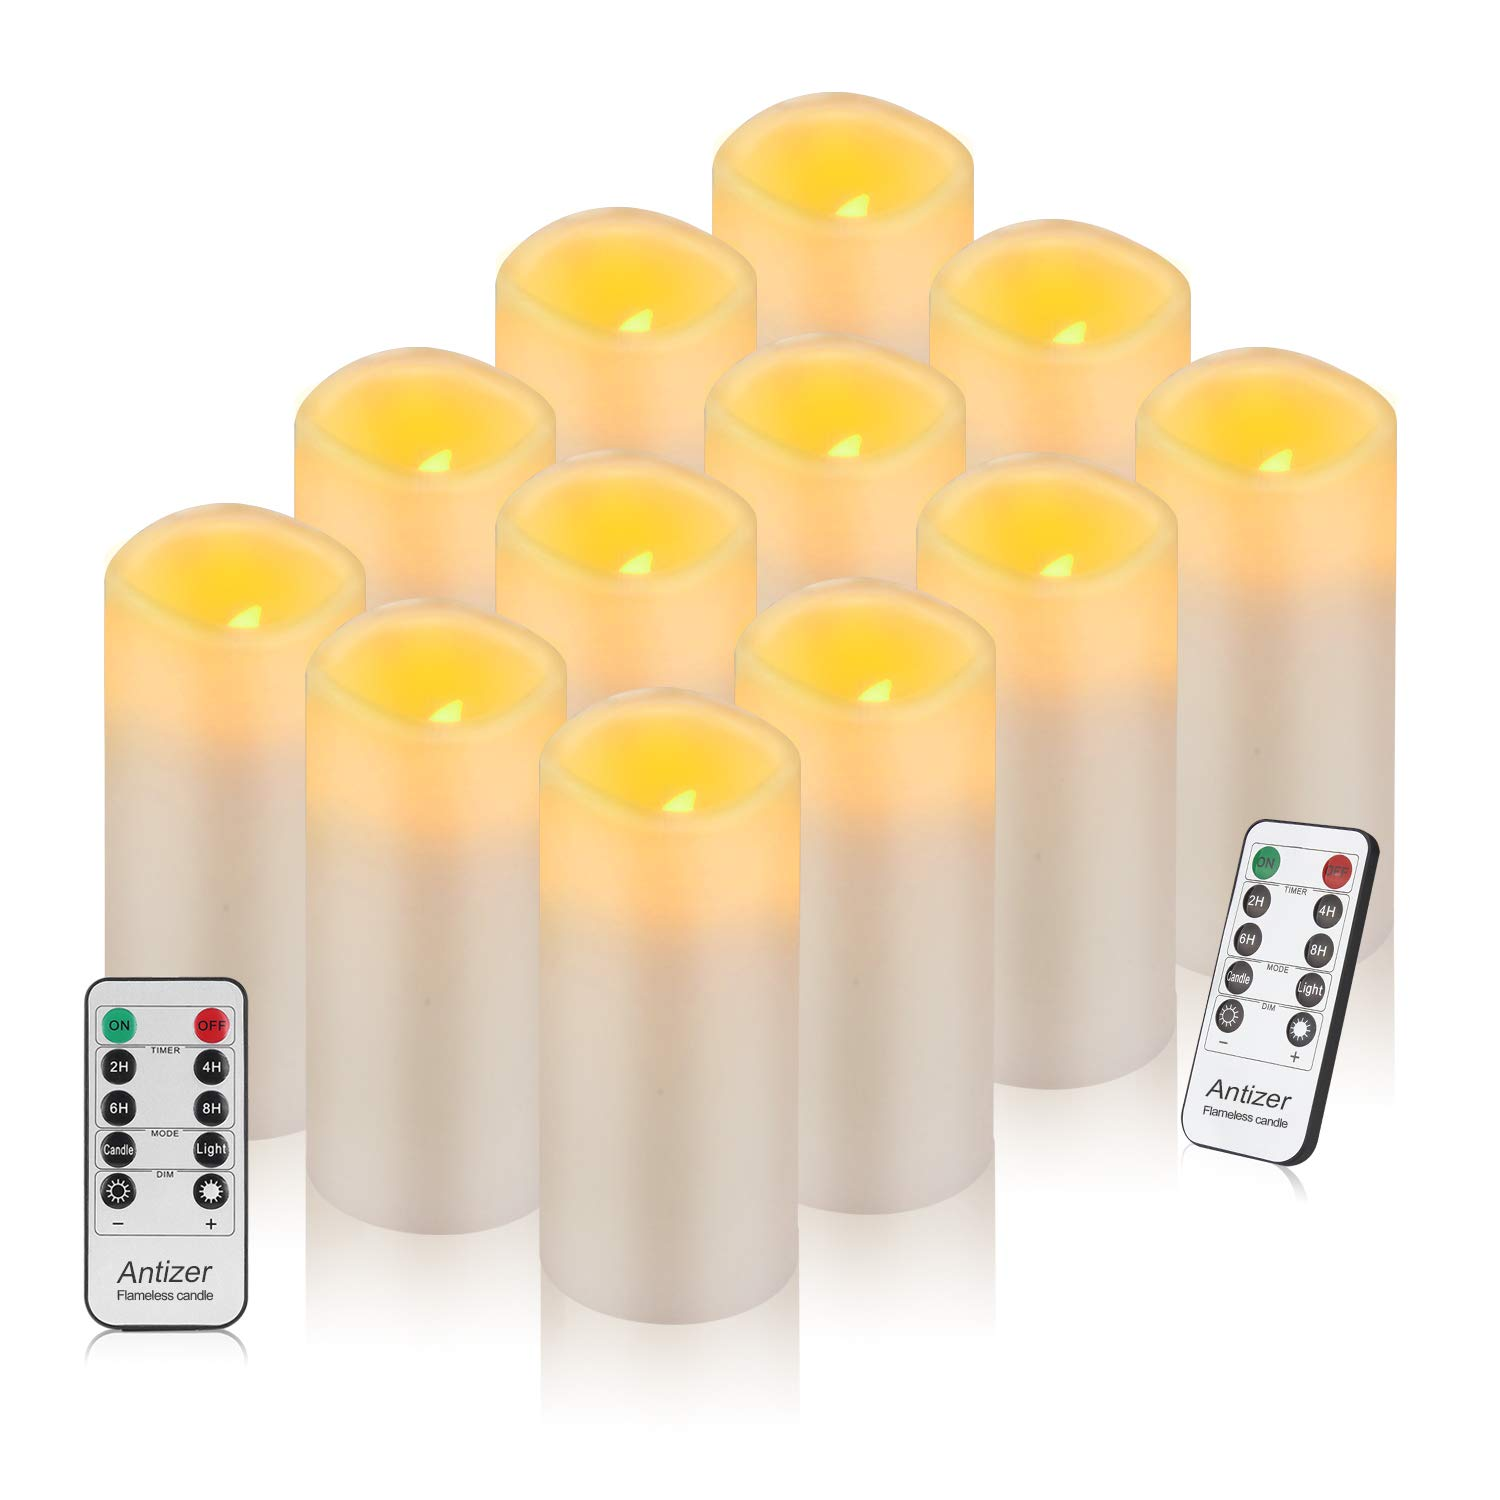 Antizer Flameless Candles Battery Operated LED Candles 2.2'' D X 5'' H Pack of 12 Real Wax Pillar Candles Ivory Color Include Remote with 24 Hours Timer Function